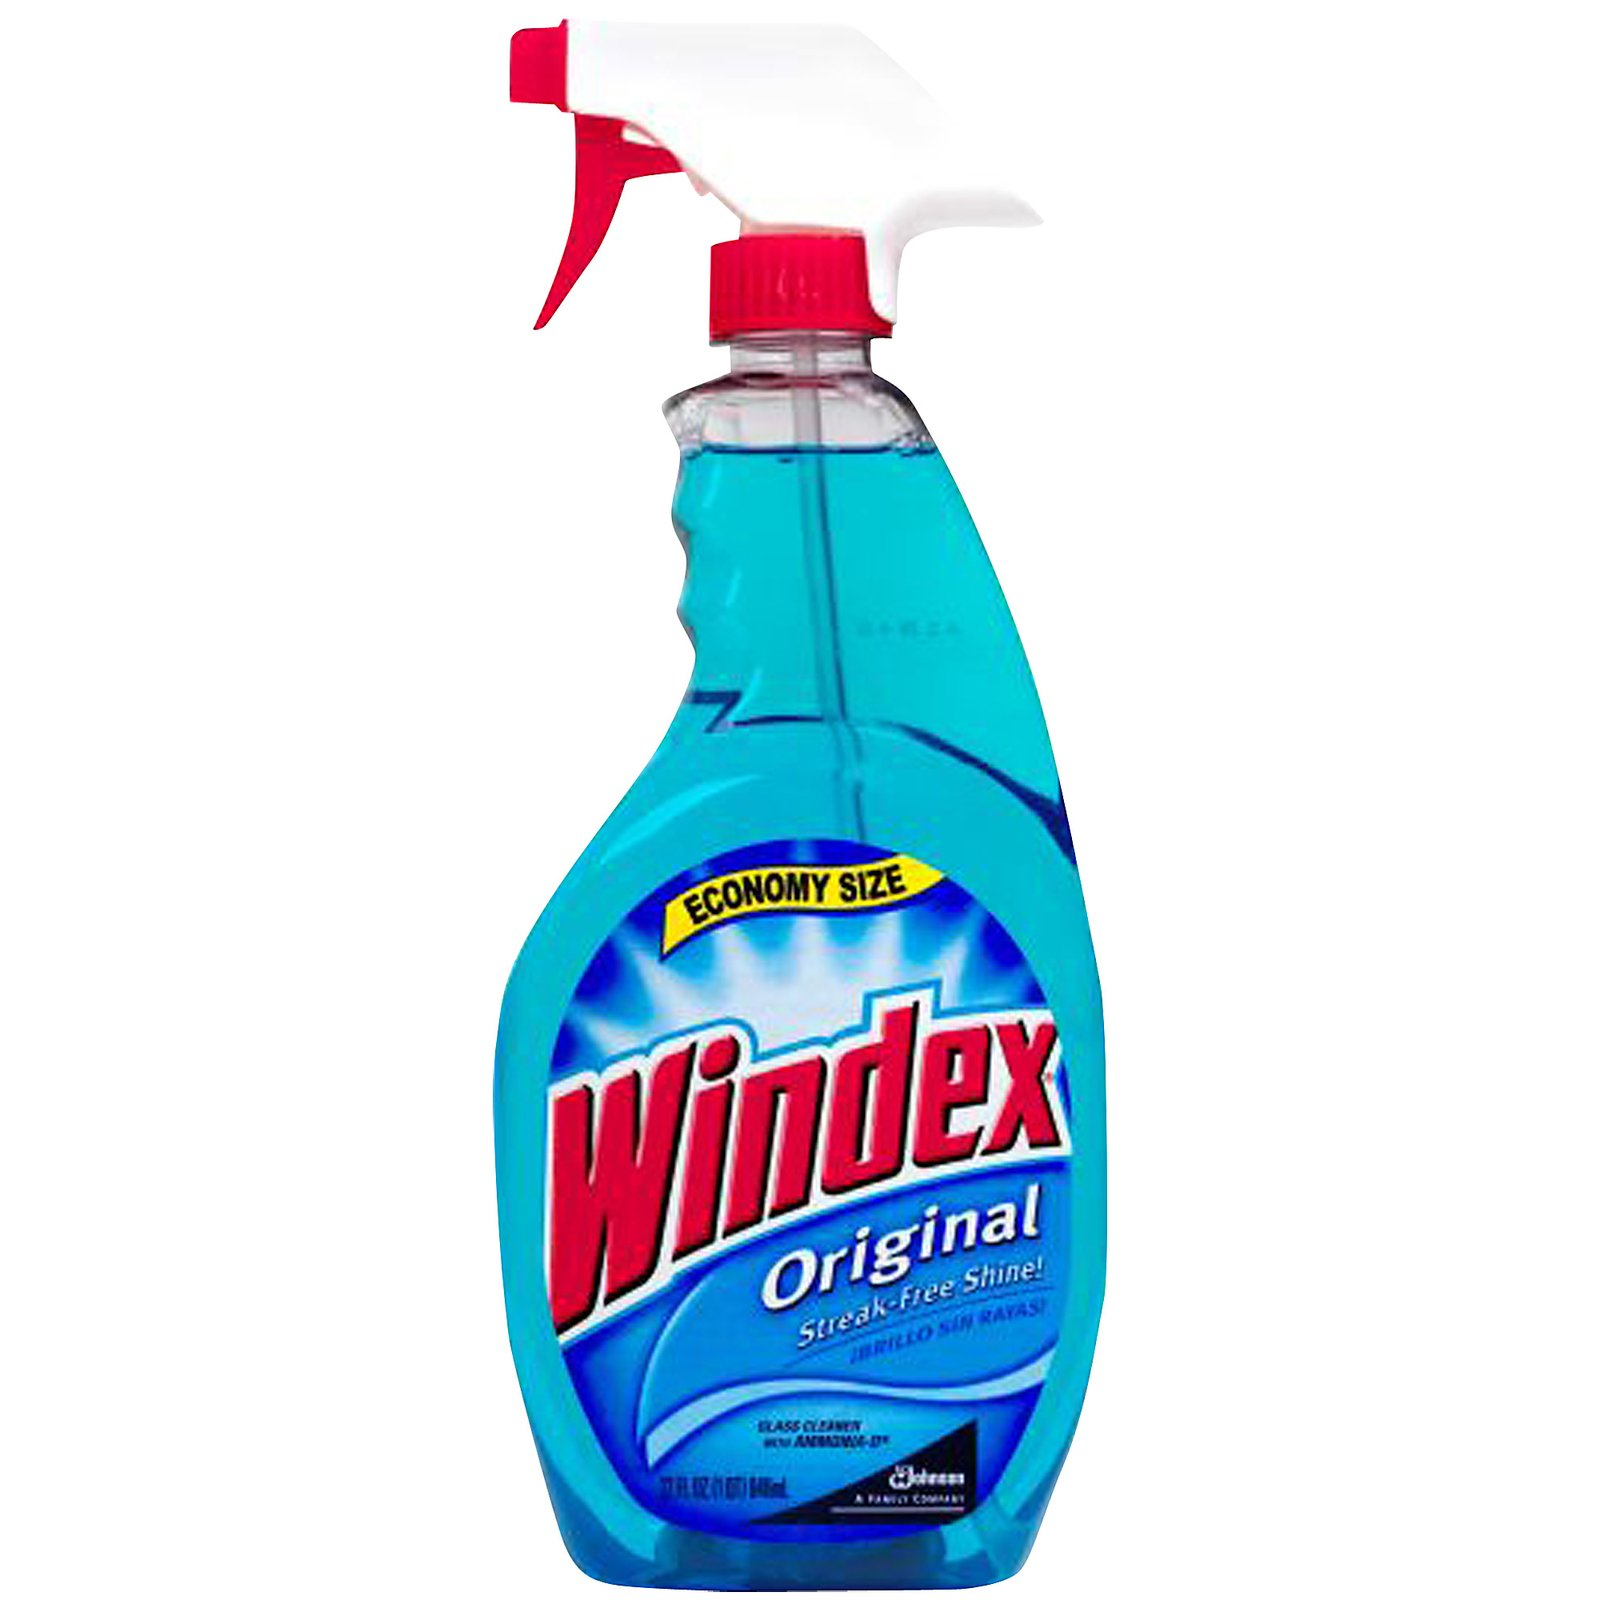 6 really cool uses for windex u00ae   high value  0 50  1 windex